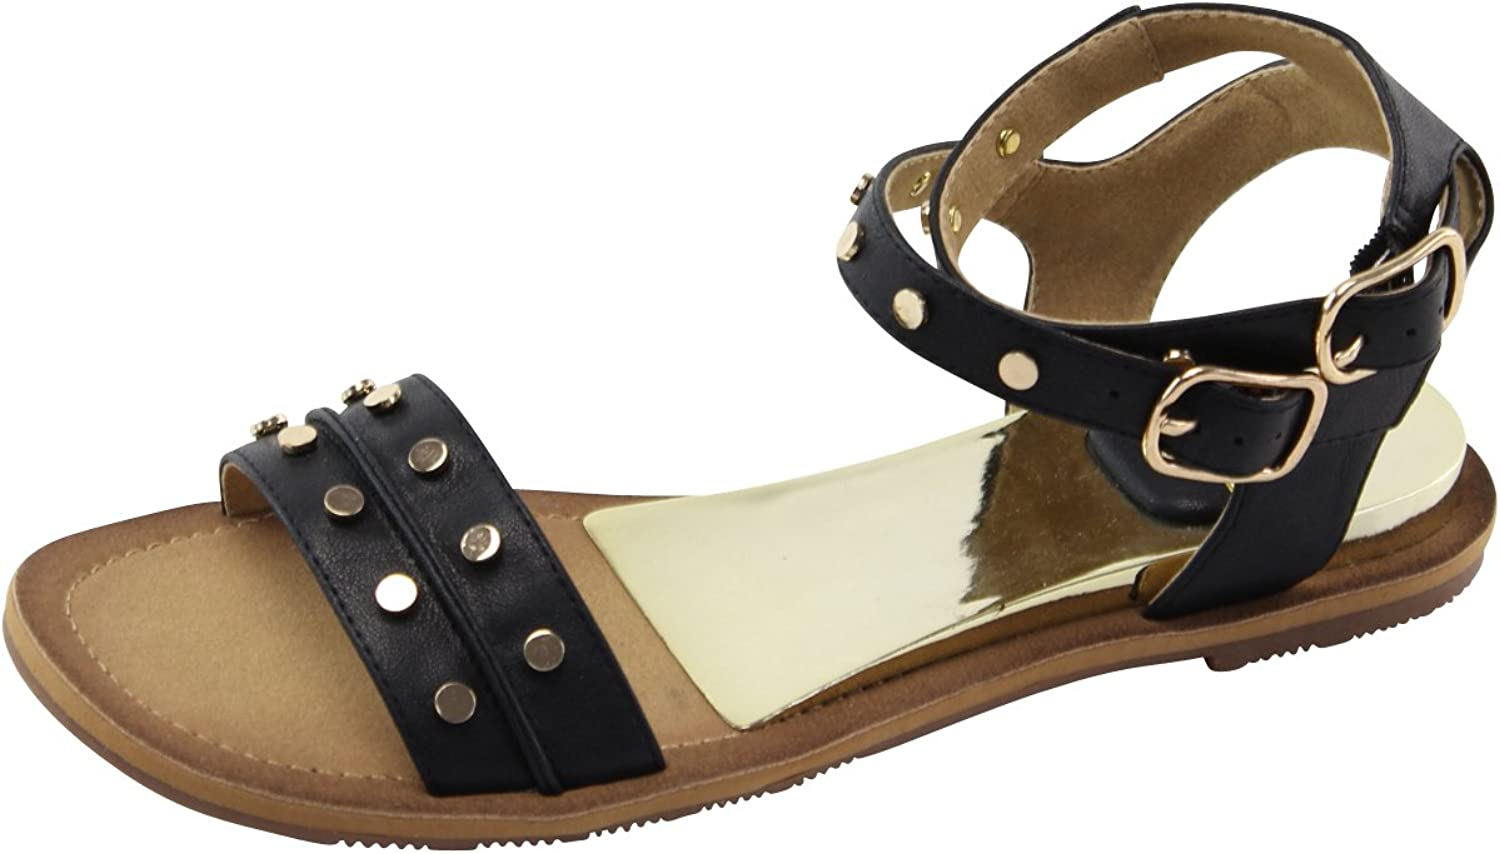 Cambridge Select Women's Ankle Strappy Buckle gold Studded Flat Sandal